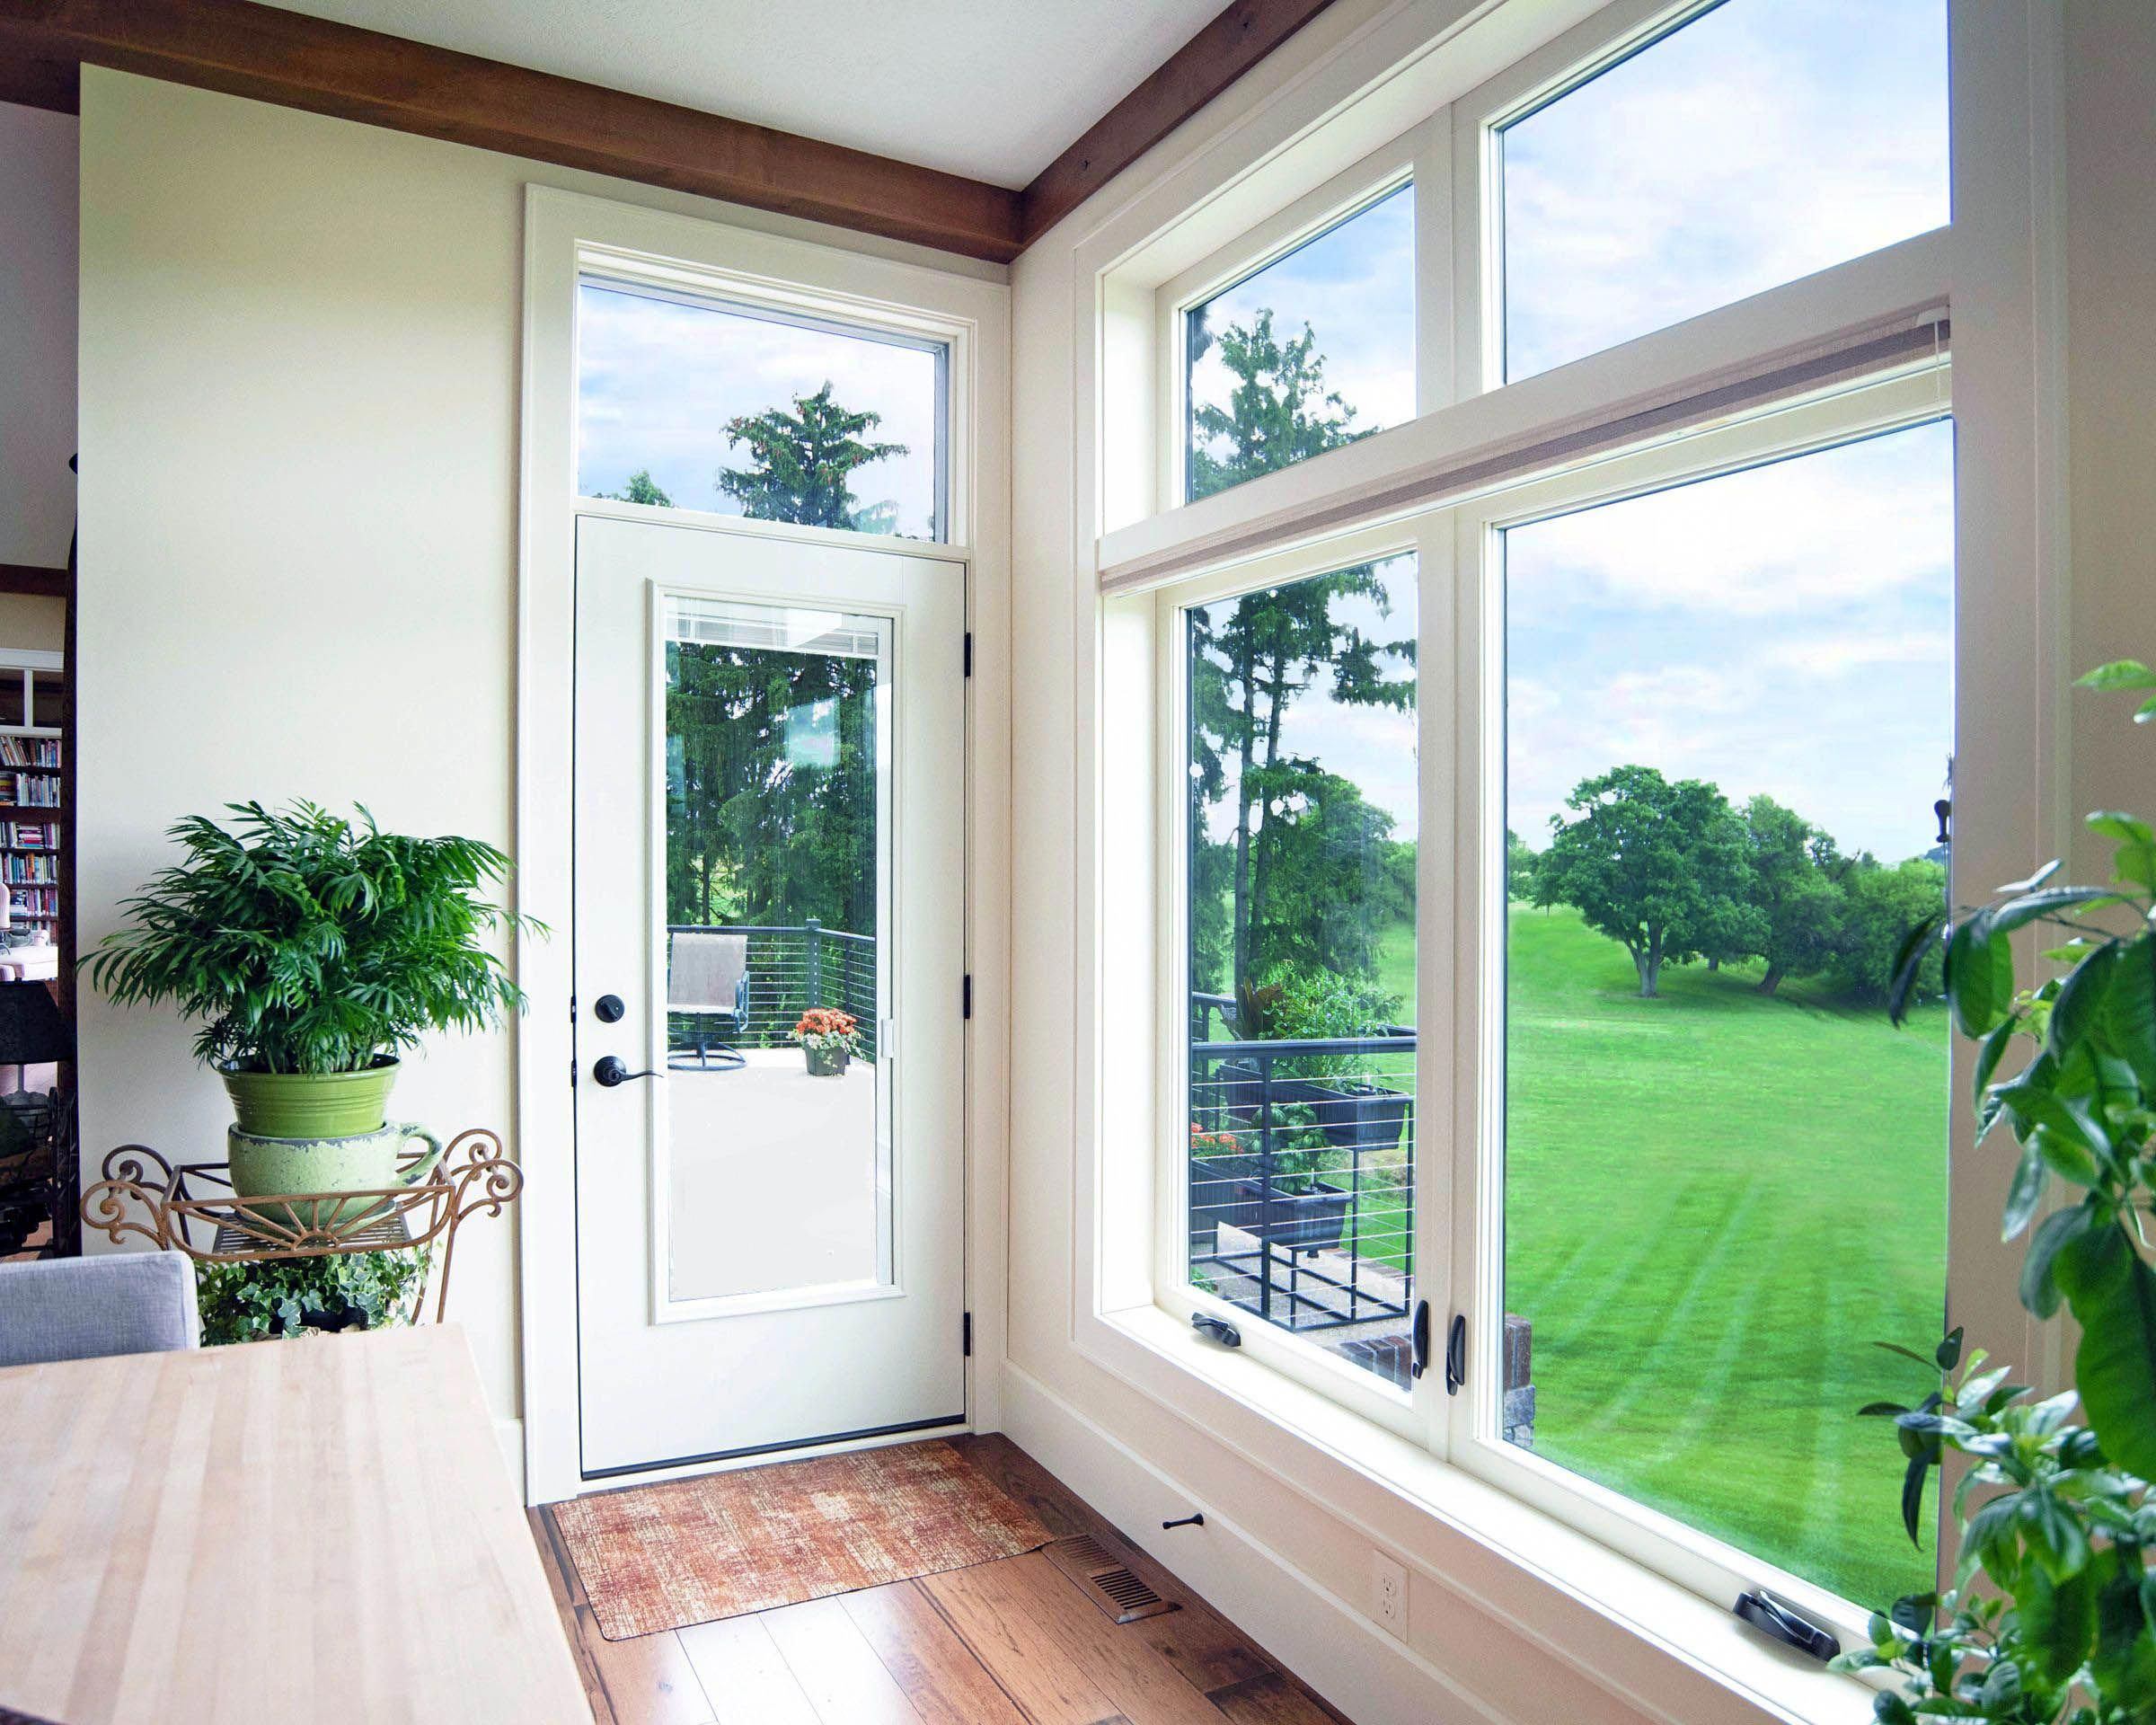 Stop By Our Webpage For Much More Information On This Stunning Bay Windows Baywindows Window Design Vinyl Replacement Windows Modern Windows